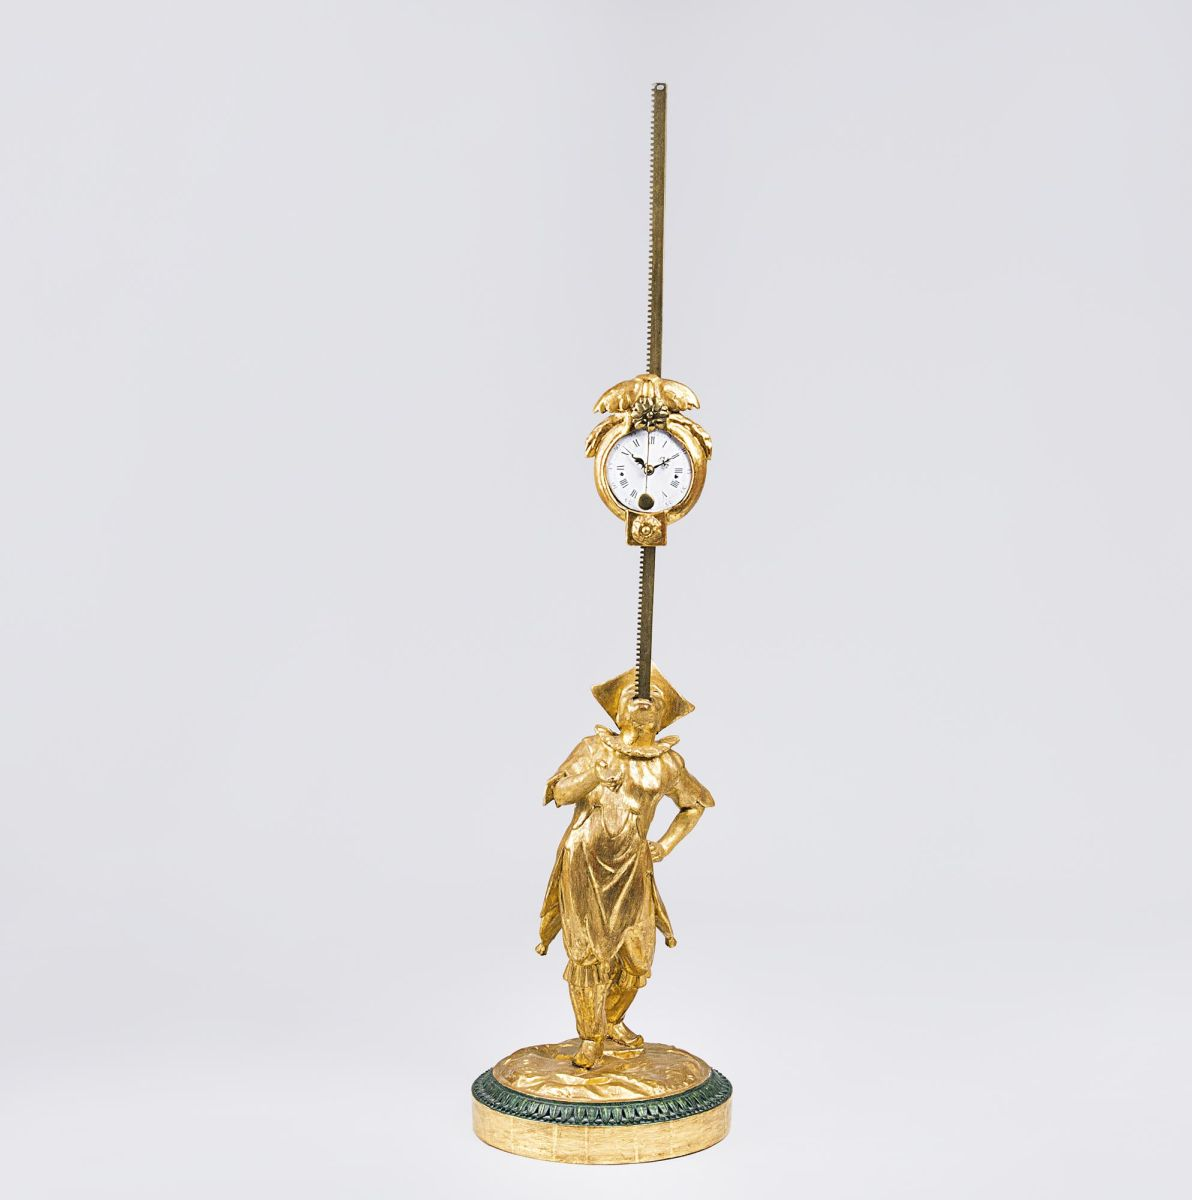 A rare Louis-Seize Rack Clock with a Sculpture of a Chinese